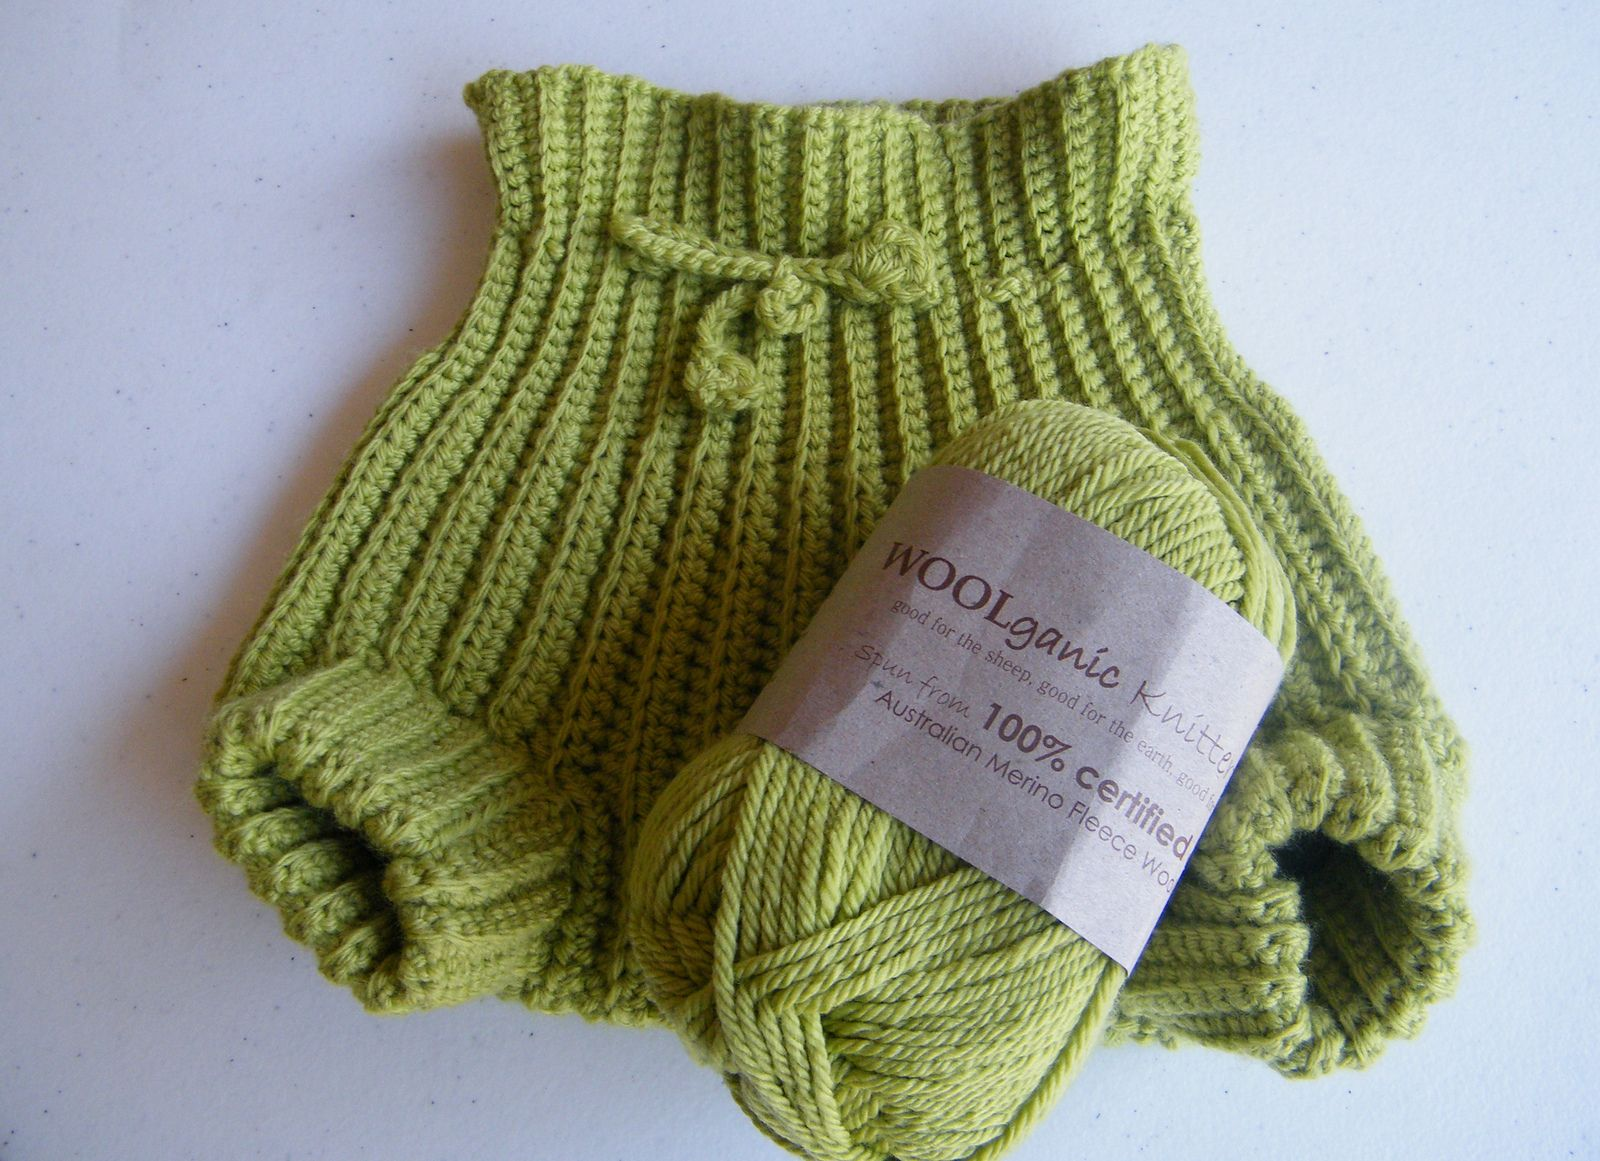 Wool Soaker pattern by Jenny King | Ravelry, Pattern library and Diapers